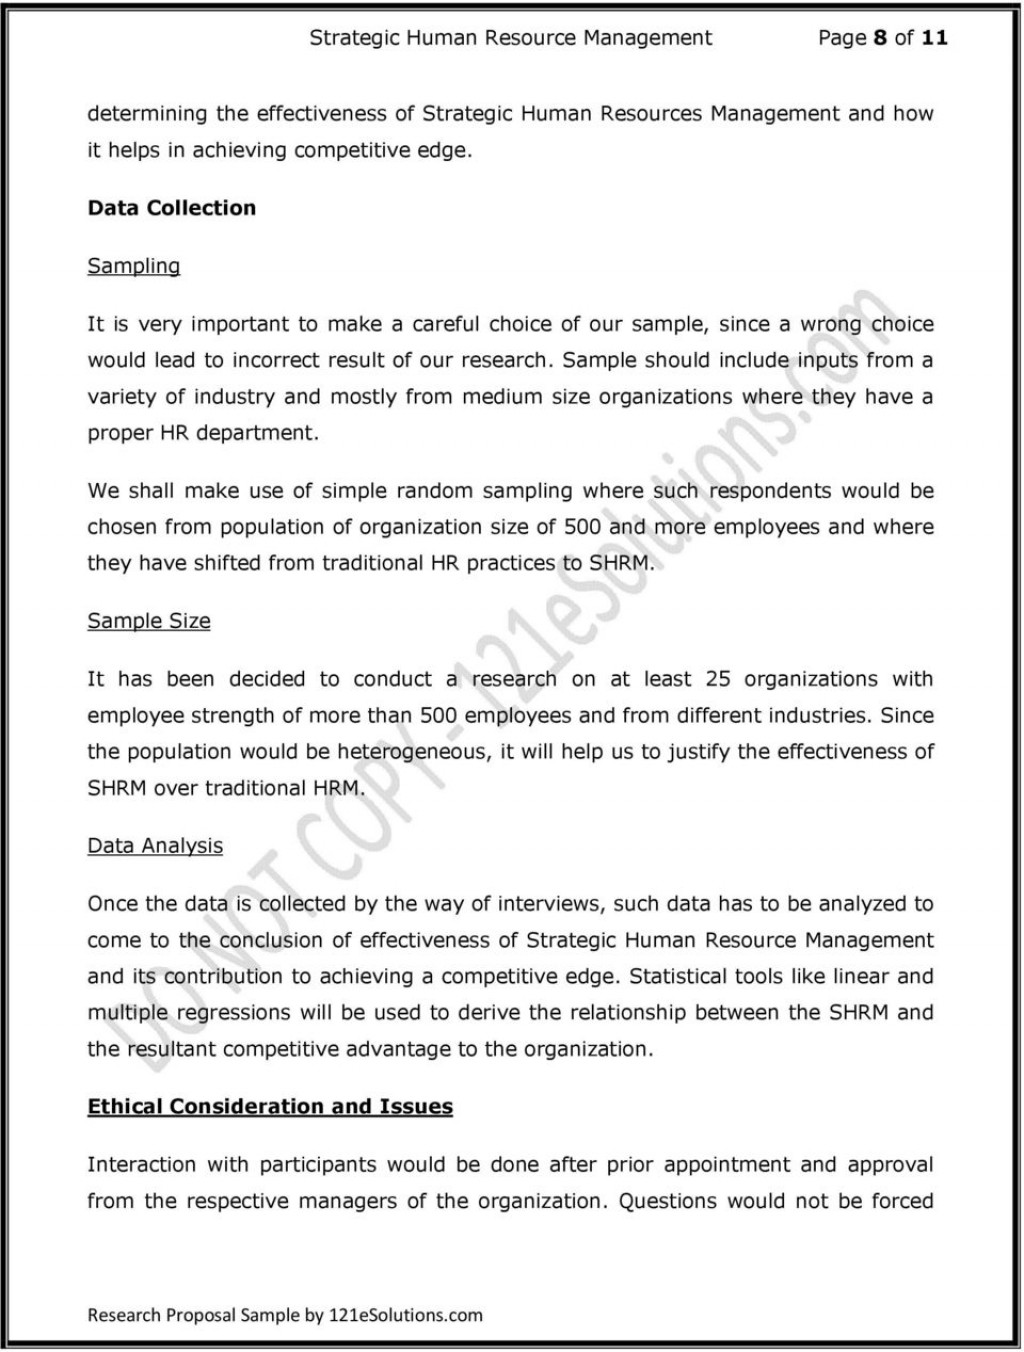 013 Action Research Proposal Paper Examples Page 8 Breathtaking Sample Papers Large